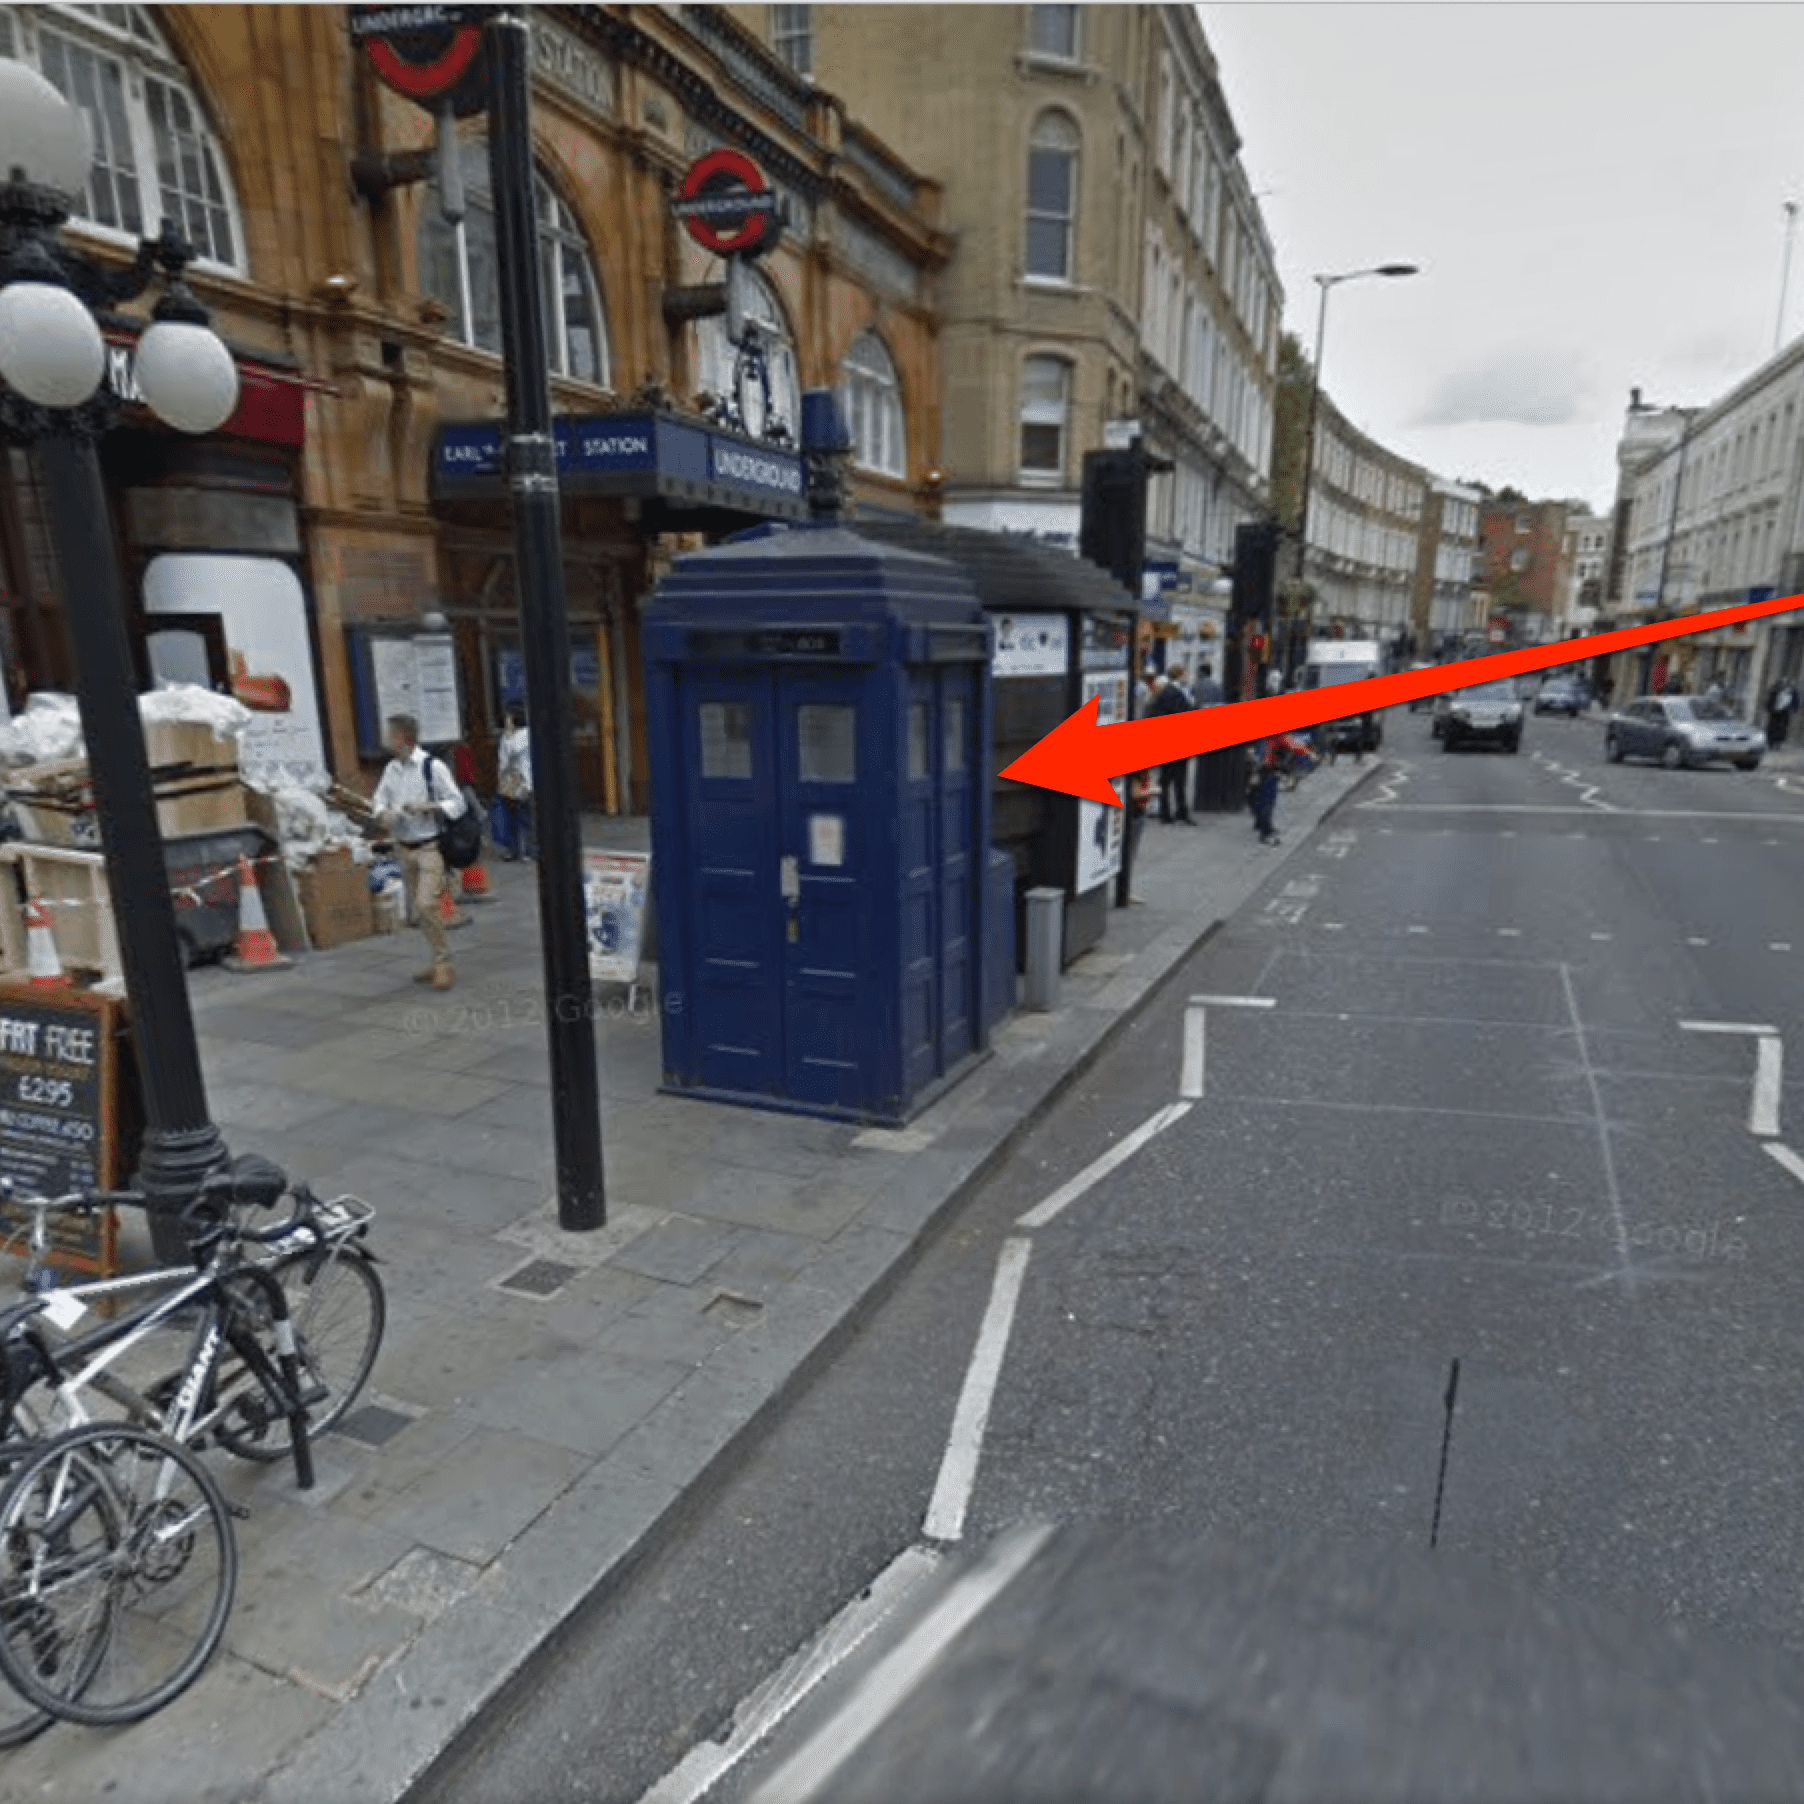 How to Find the 'Doctor Who' TARDIS in Google Maps